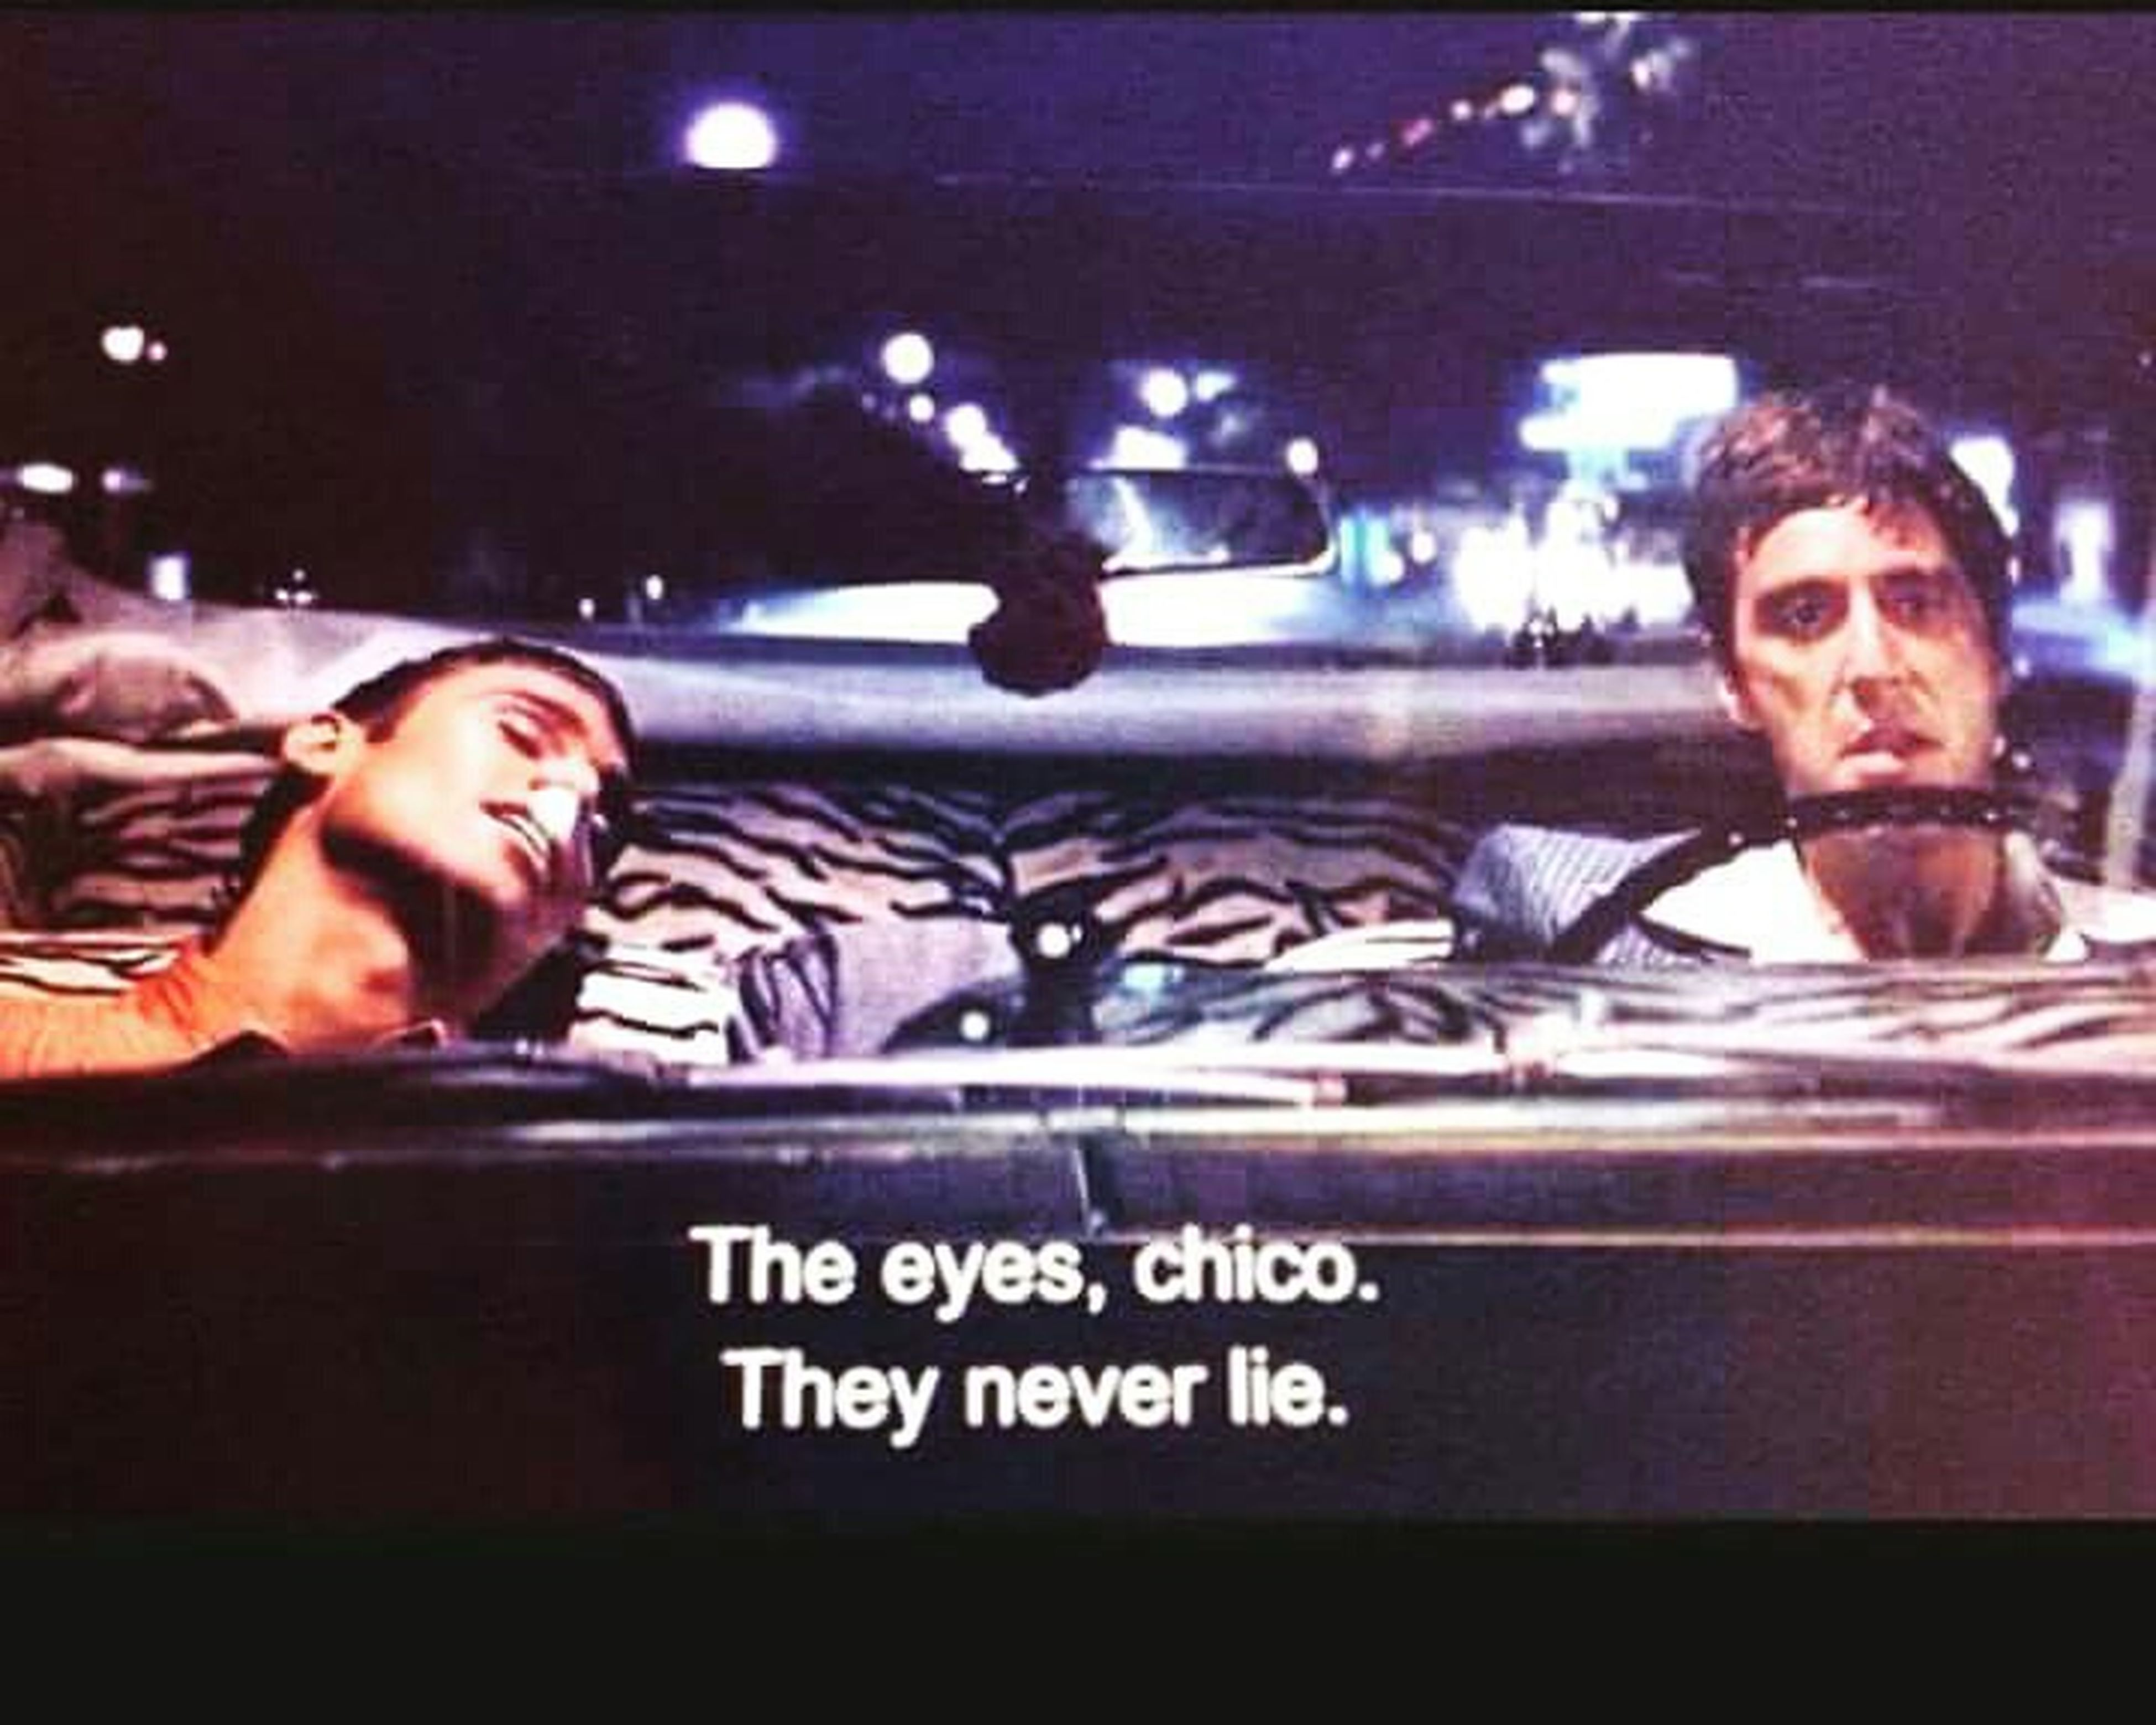 Theeyeschico Scurface Alpacino Sotrue Movietime  MOVIE Thessaloniki Greece